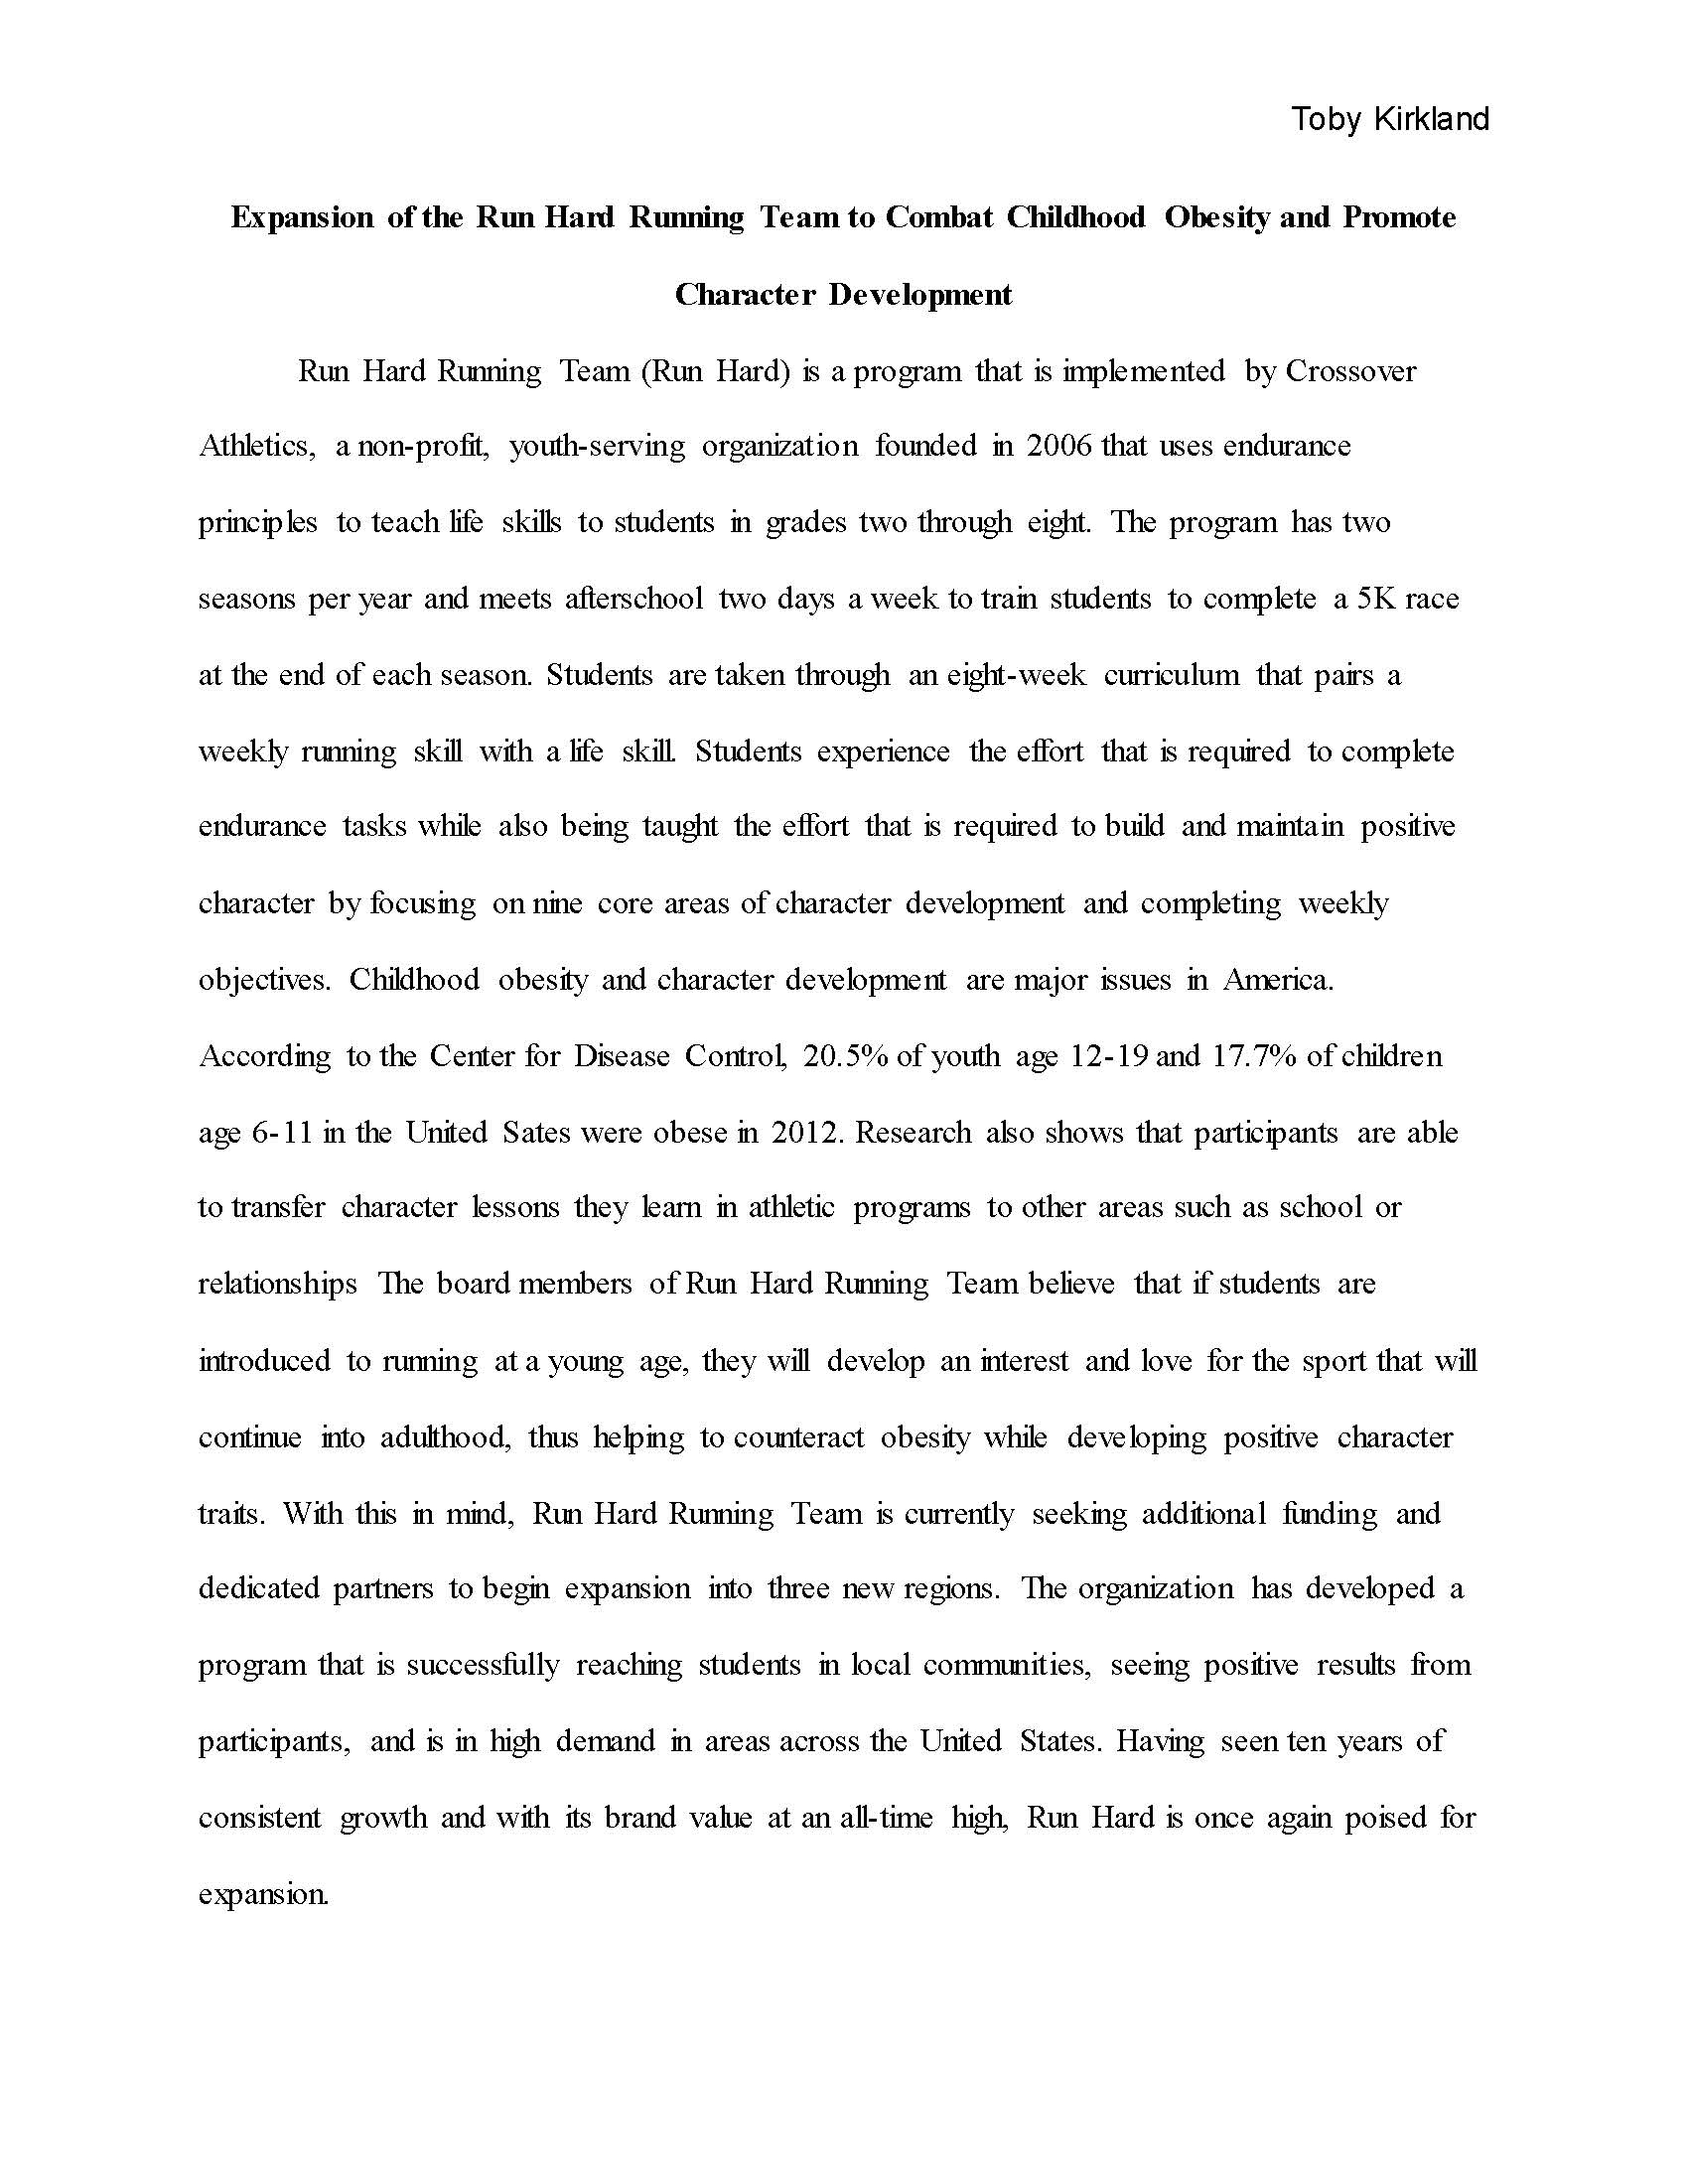 childhood essay cover letter examples of good essays examples of  also sample of research proposal on childhood obesity to help prevent childhoodobesity we need action on